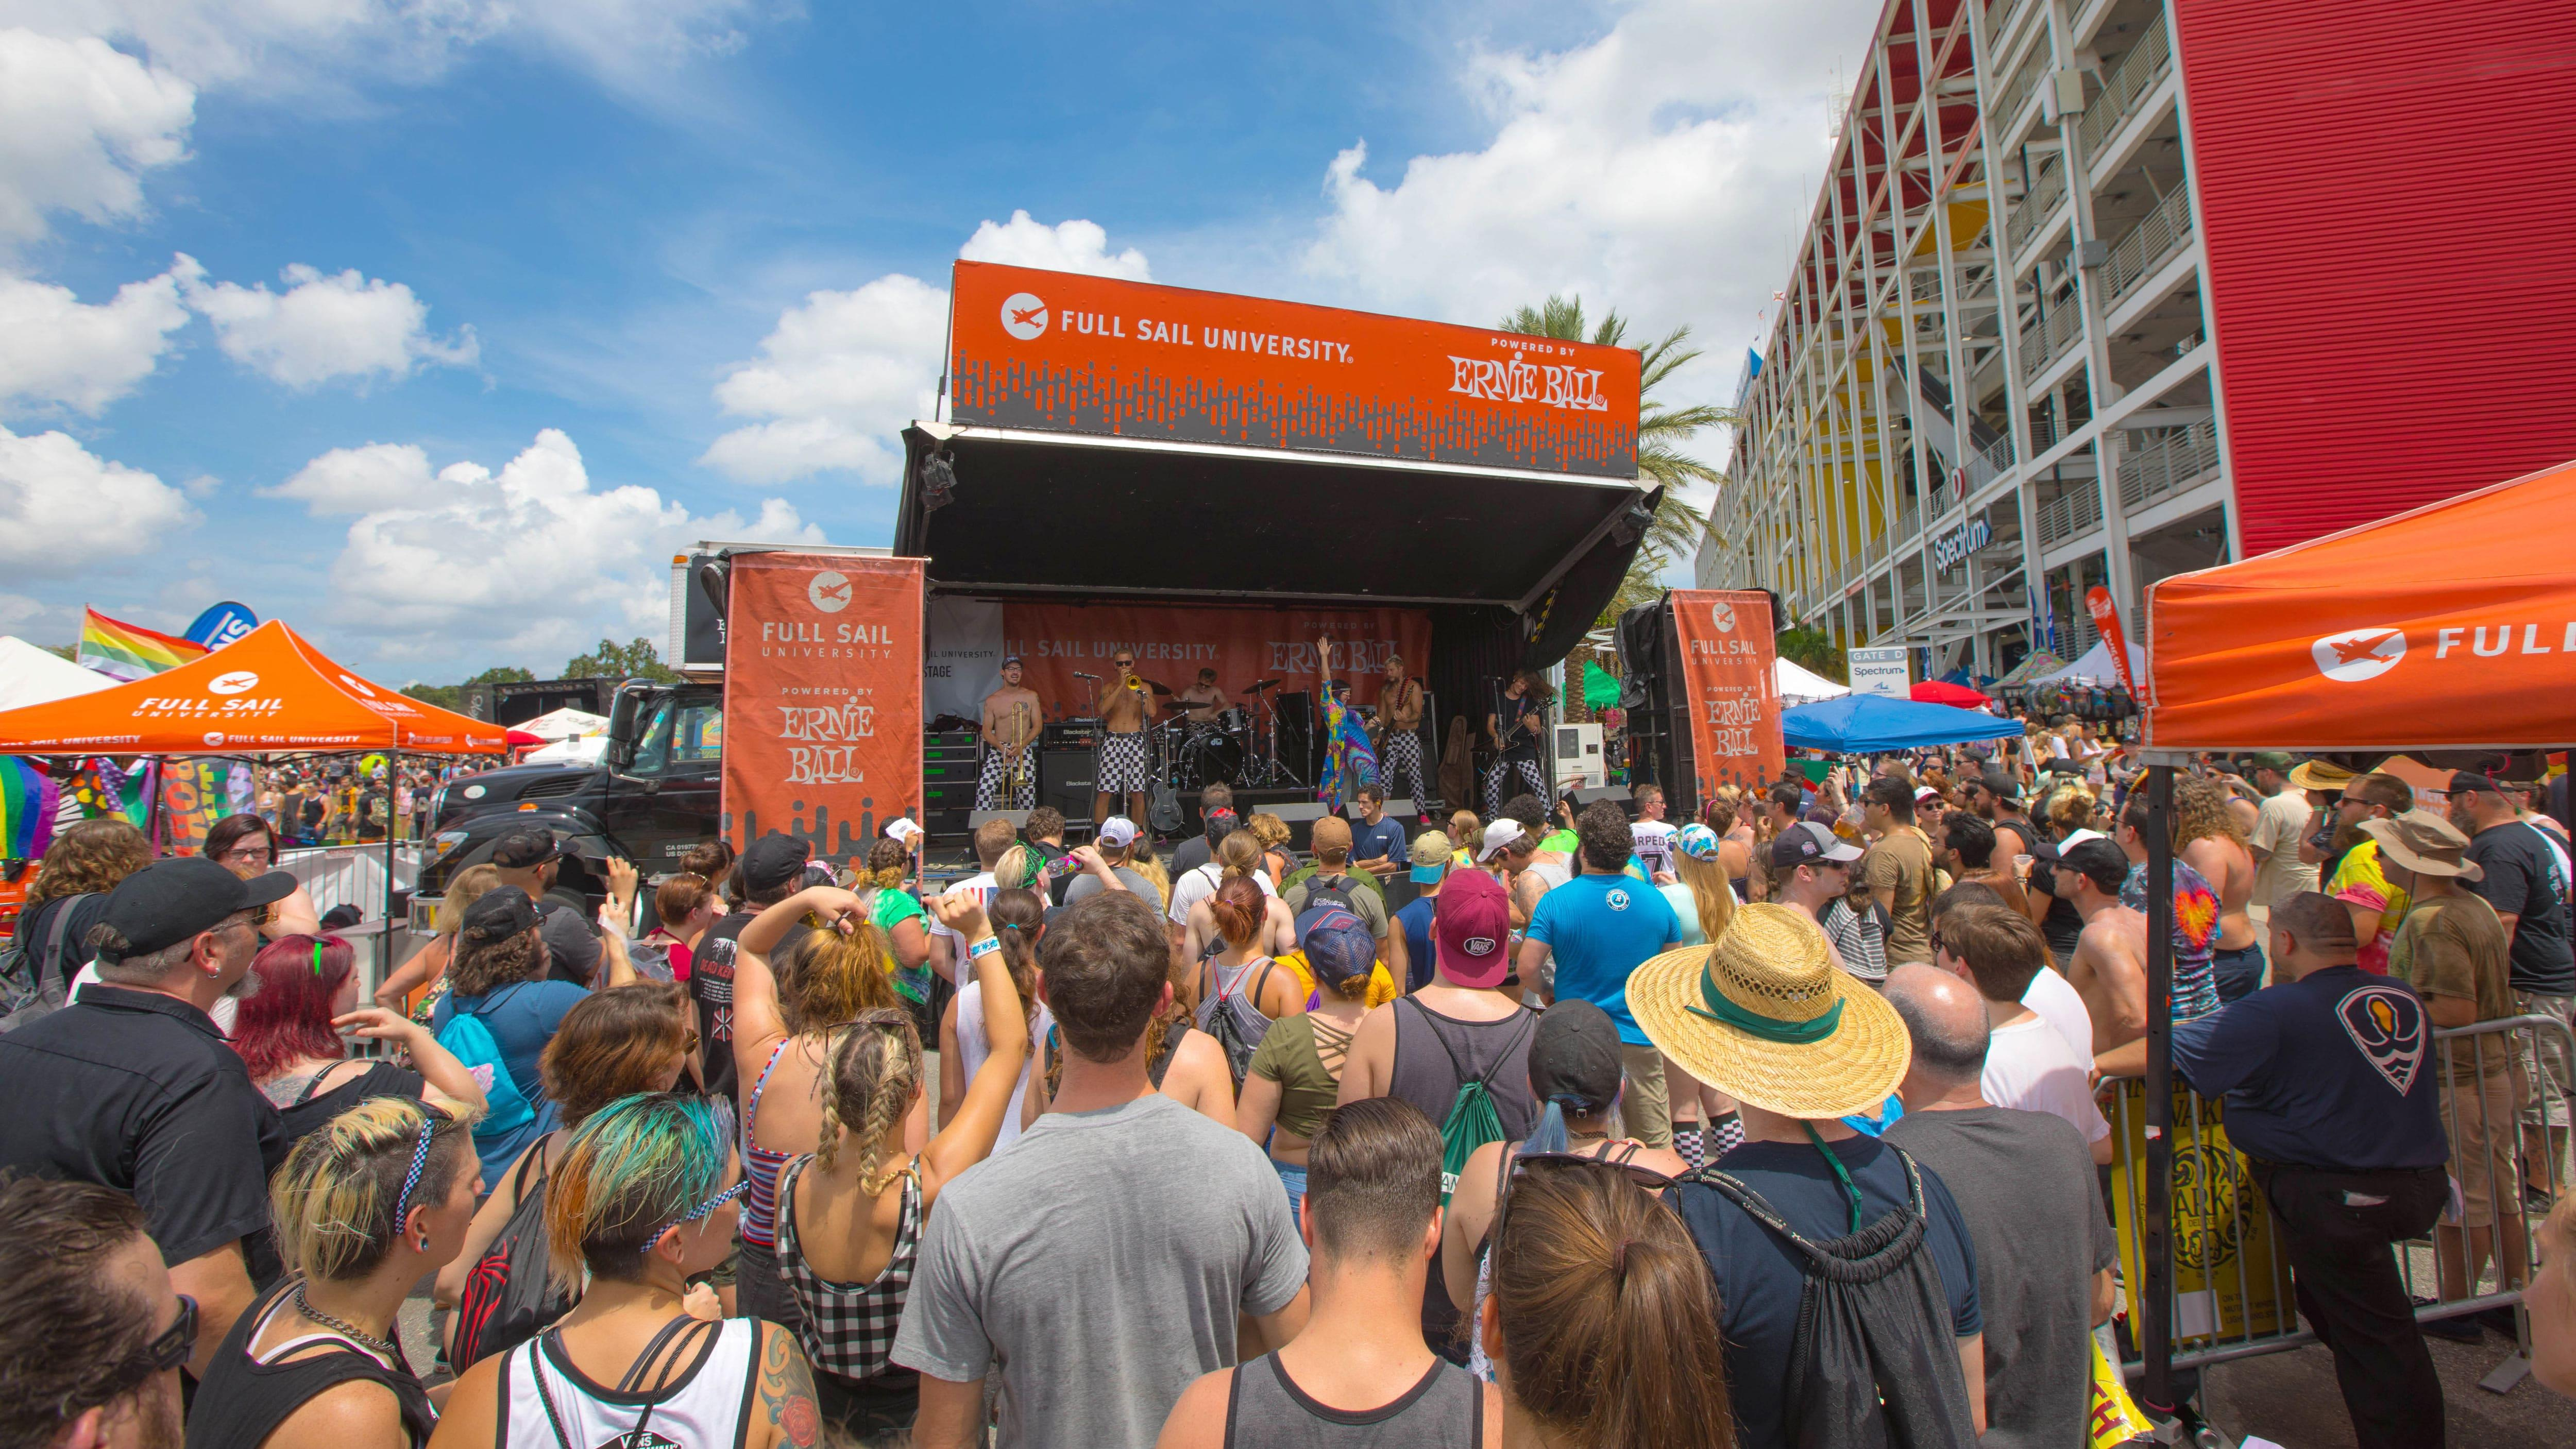 Full Sail Sponsoring Final Cross-Country Vans Warped Tour - Hero image